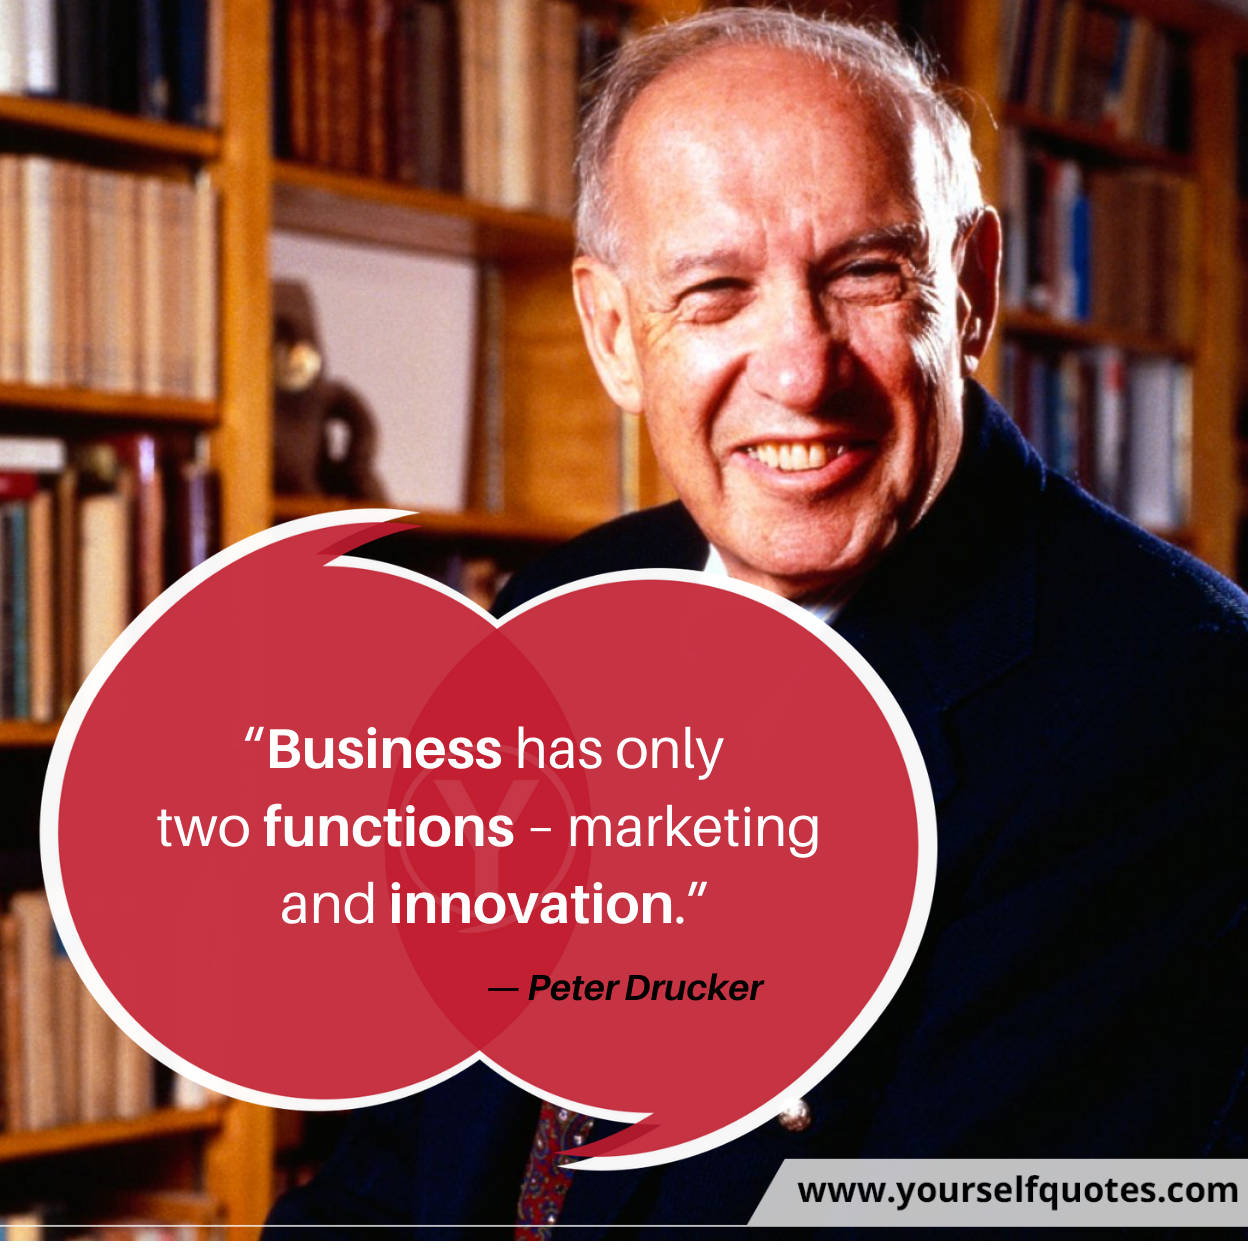 Best Business Quotes by Peter Drucker